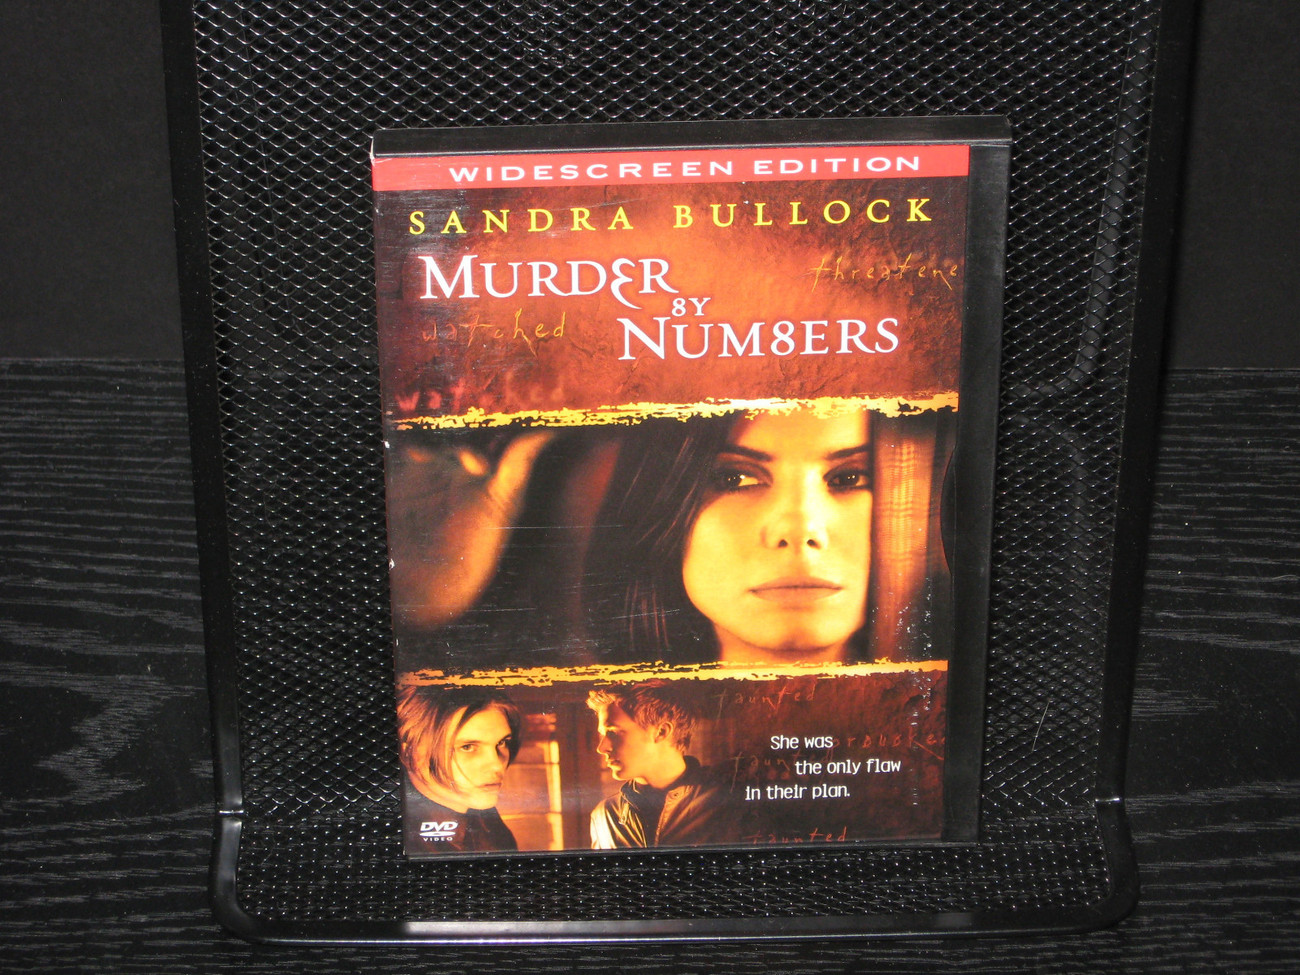 Primary image for Murder by Numbers (DVD, 2002, Widescreen)